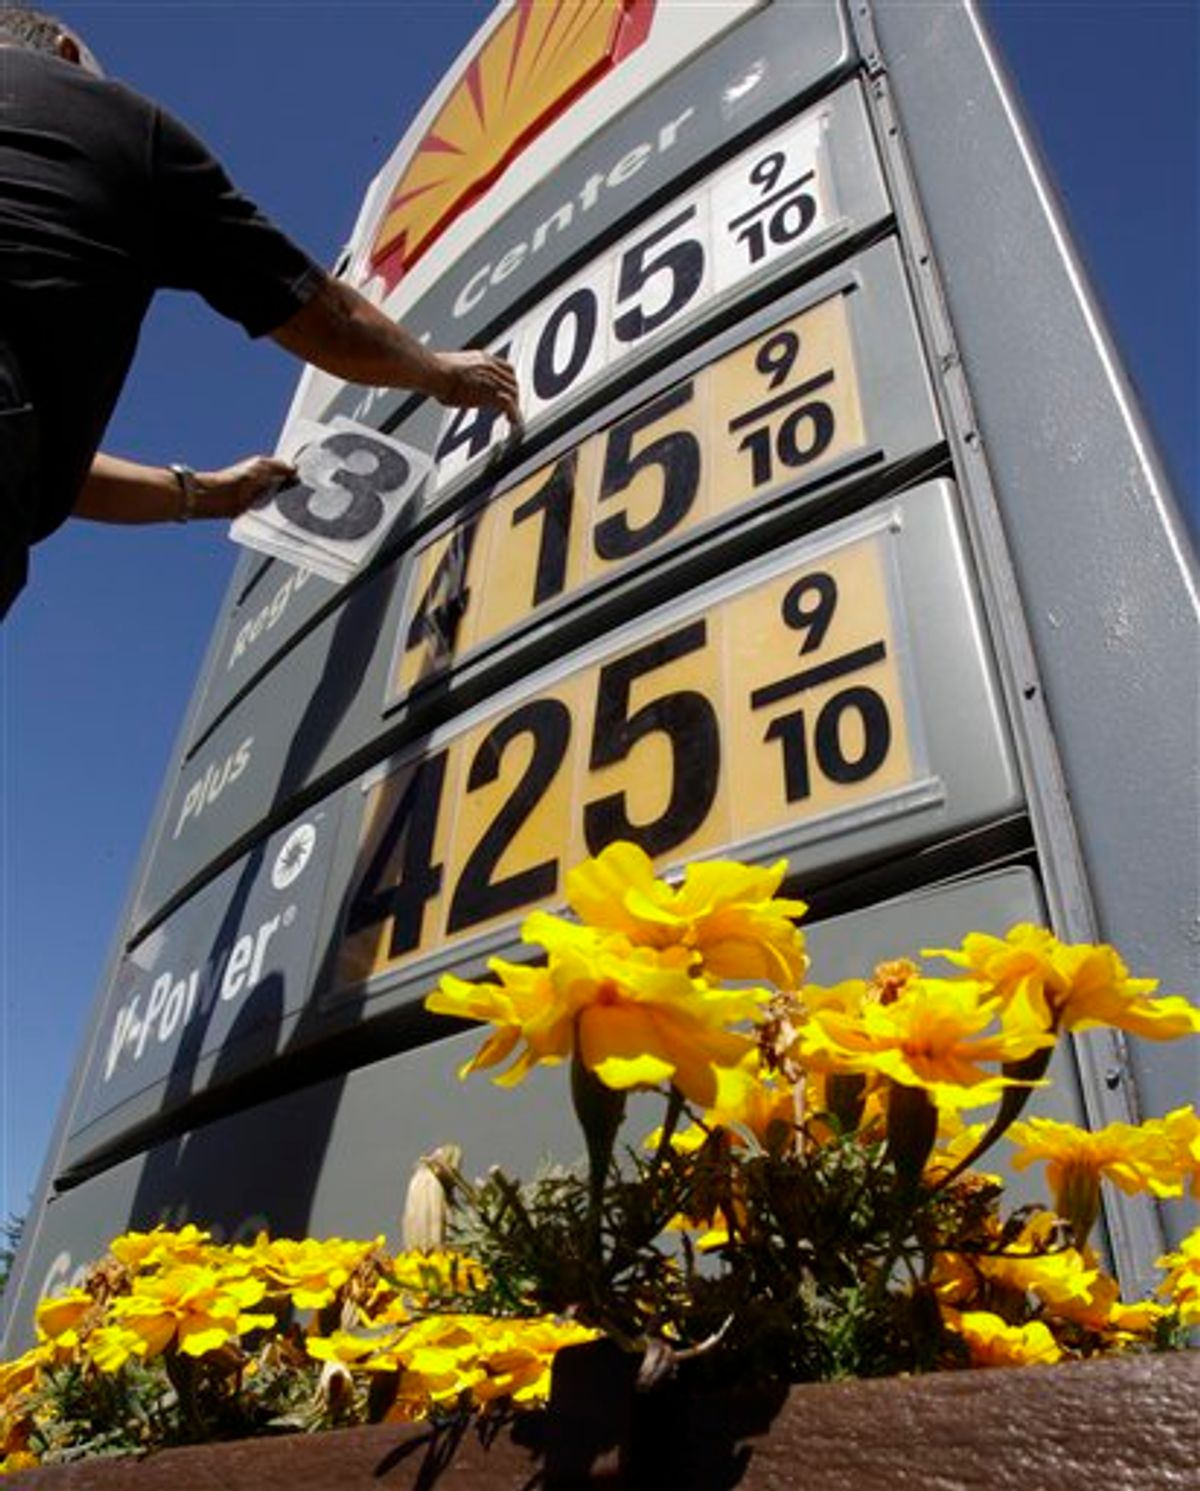 In this June 21, 2011, photo, Shell gas worker Toke Fusi lowers gas prices at a Shell gas station in Menlo Park, Calif. (AP Photo/Paul Sakuma)